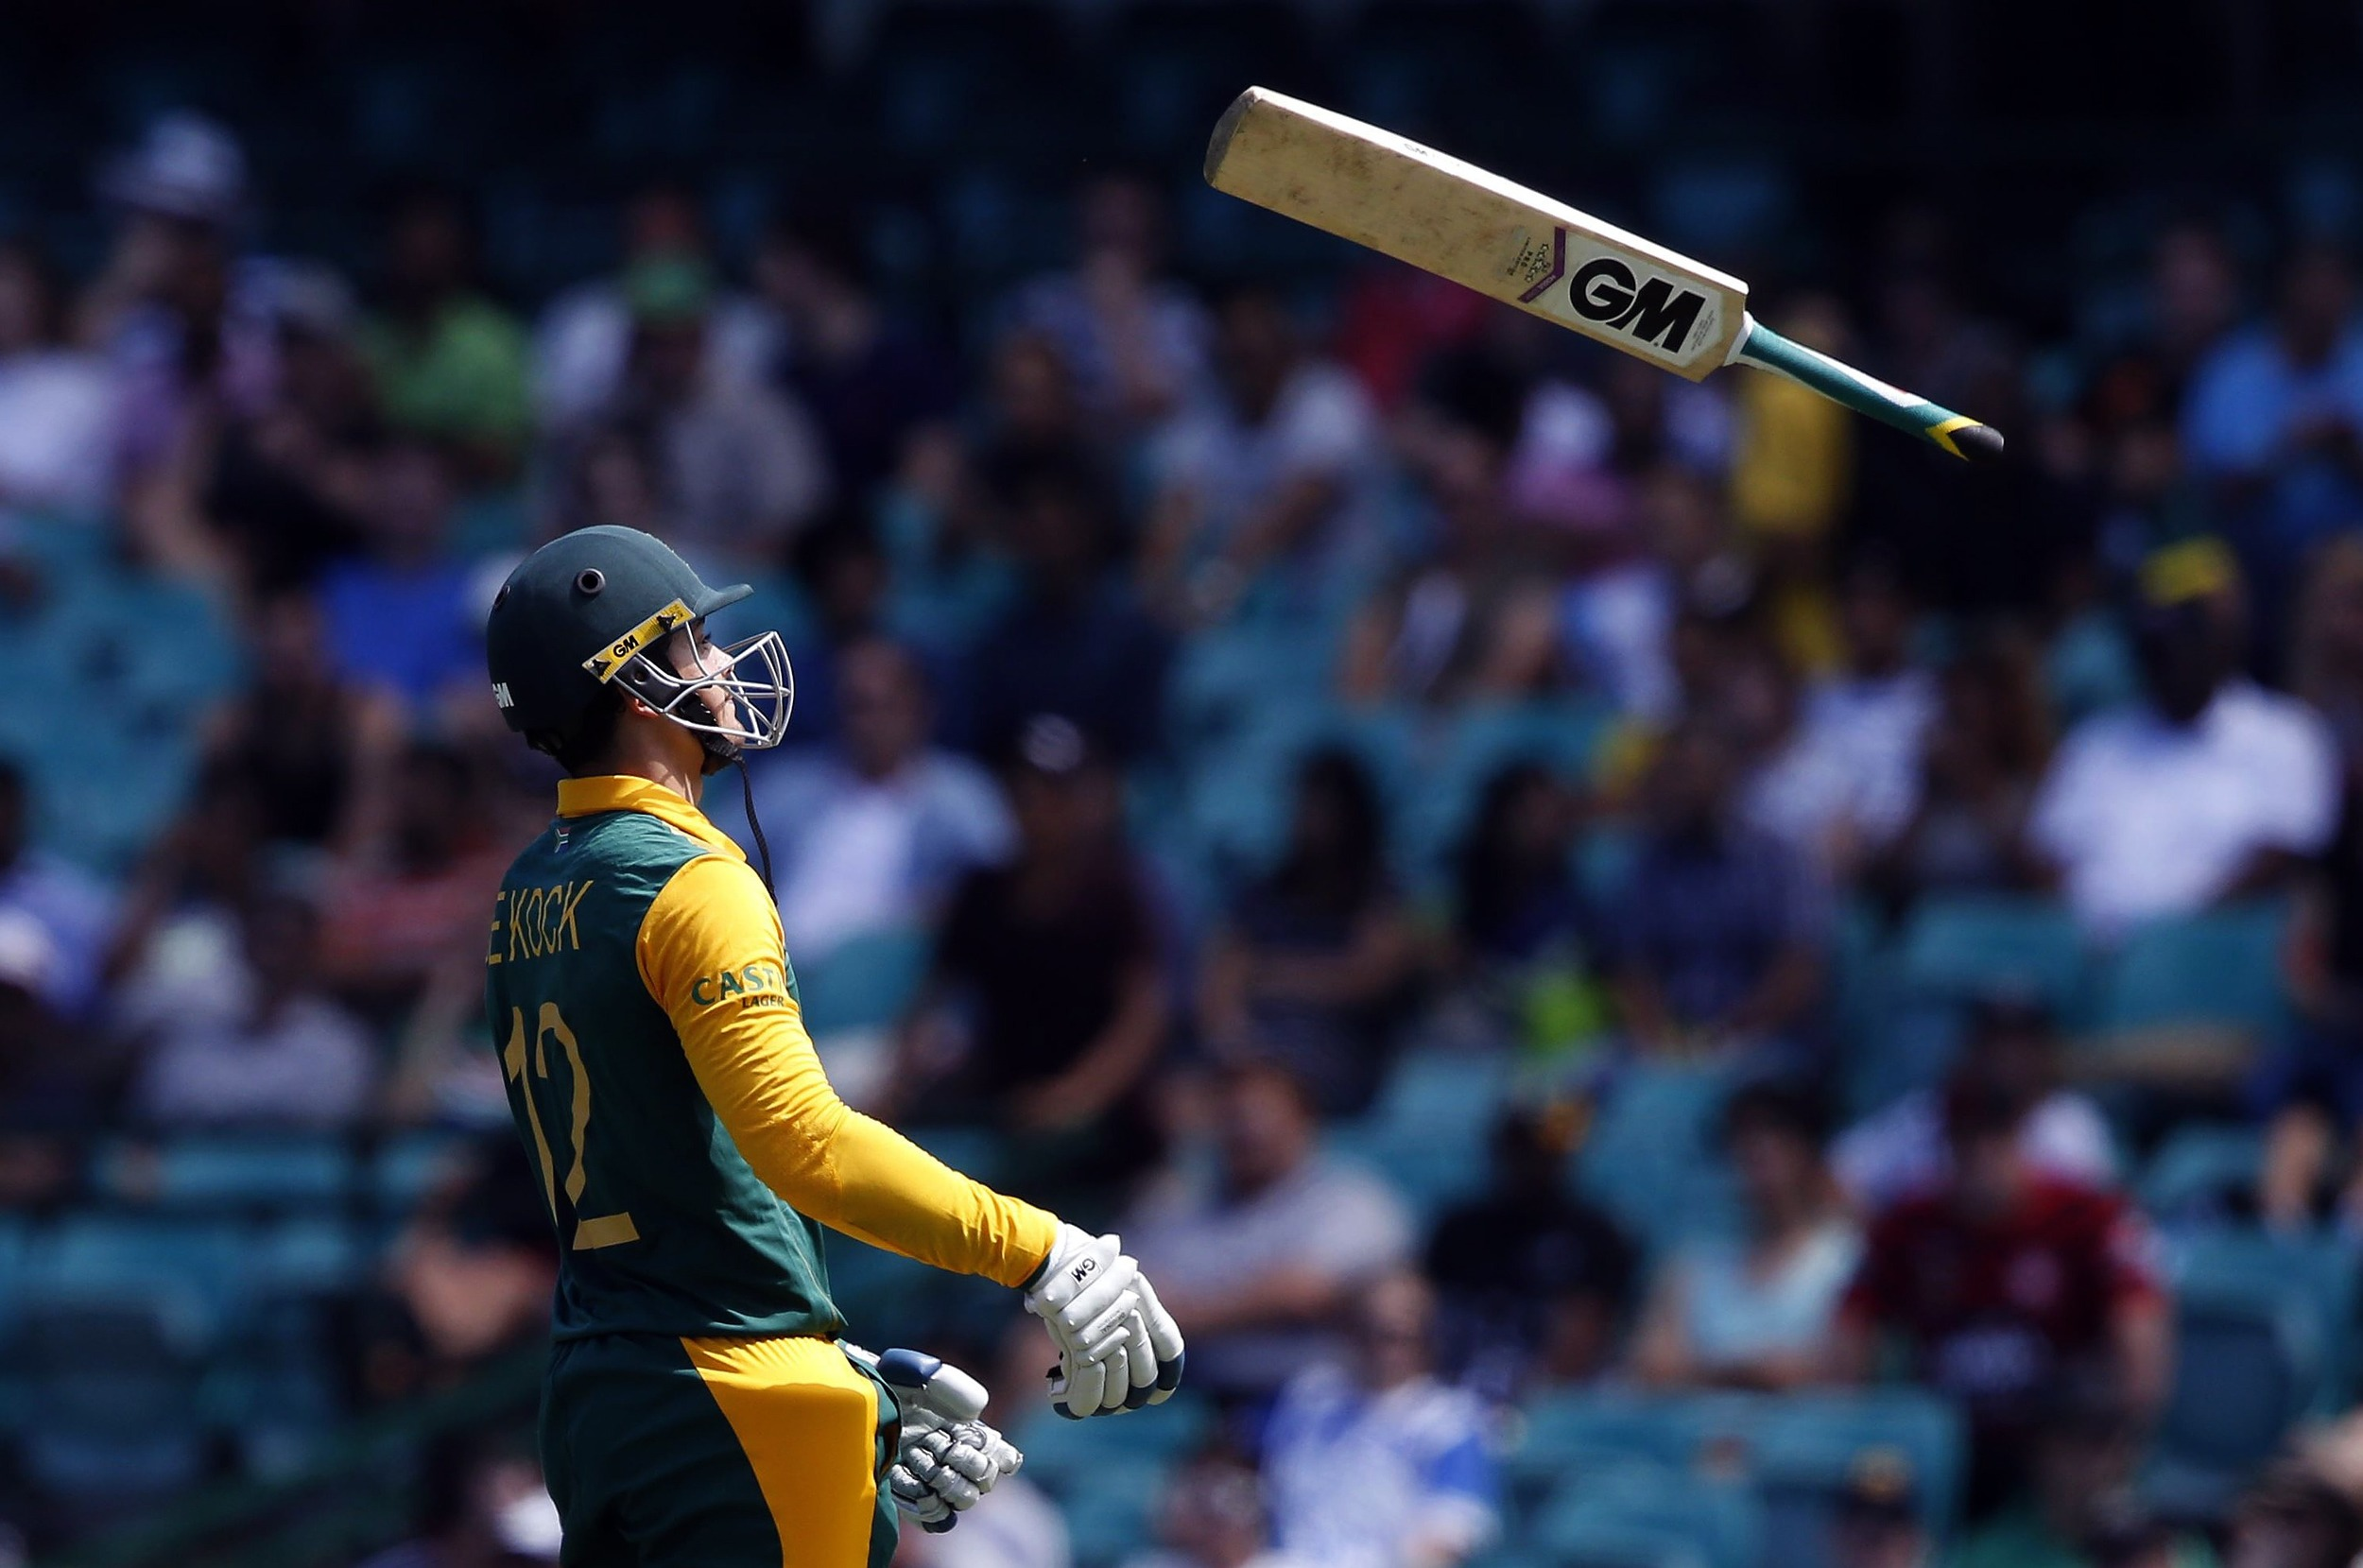 Quinton de Kock throws his bat as he walks off the field after being dismissed by West Indies bowler Jason Holder for twelve runs during the Cricket World Cup match at the Sydney Cricket Ground (SCG). Image suplied by Action Images/ Jason Reed.